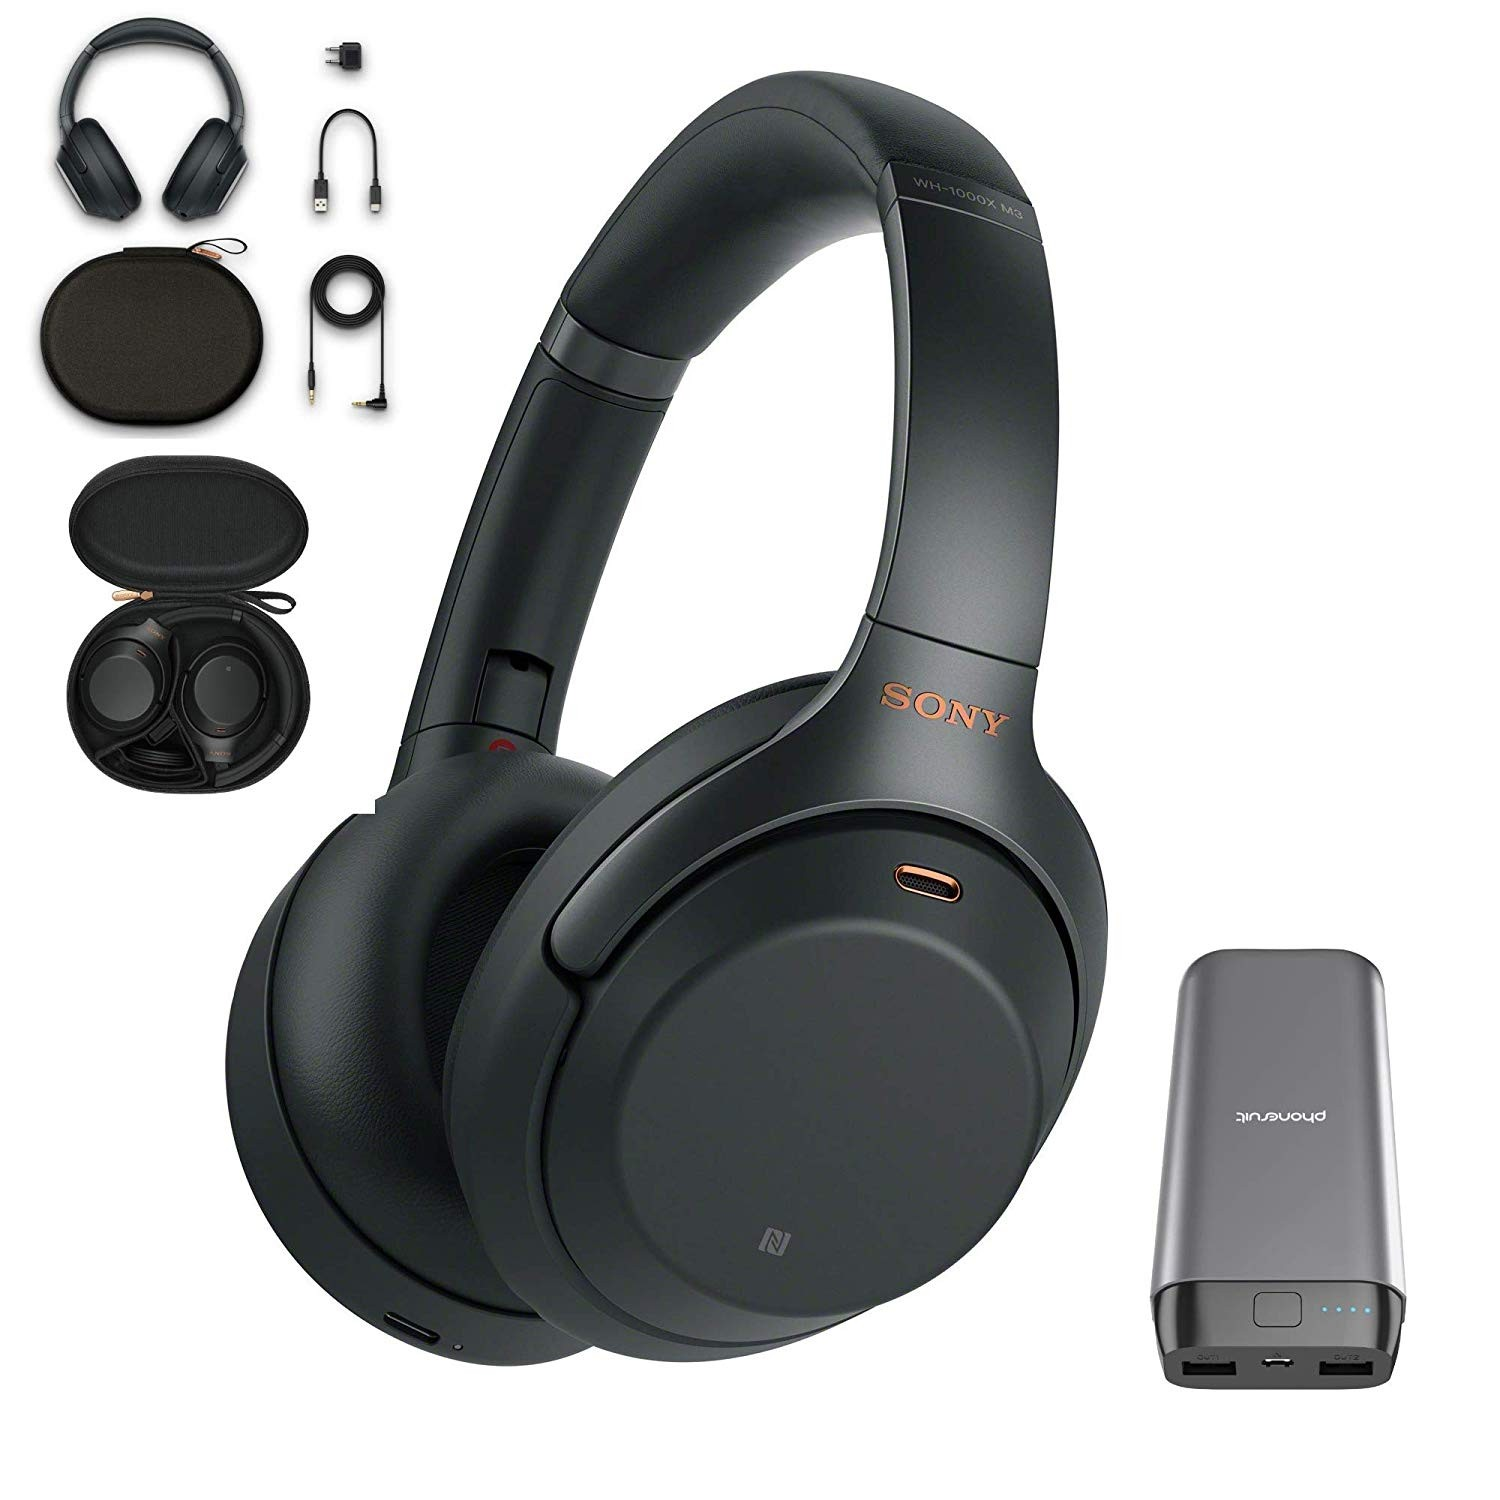 Sony WH1000XM3 Wireless Noise-Cancelling Headphones Black (WH1000XM3B.CE7)